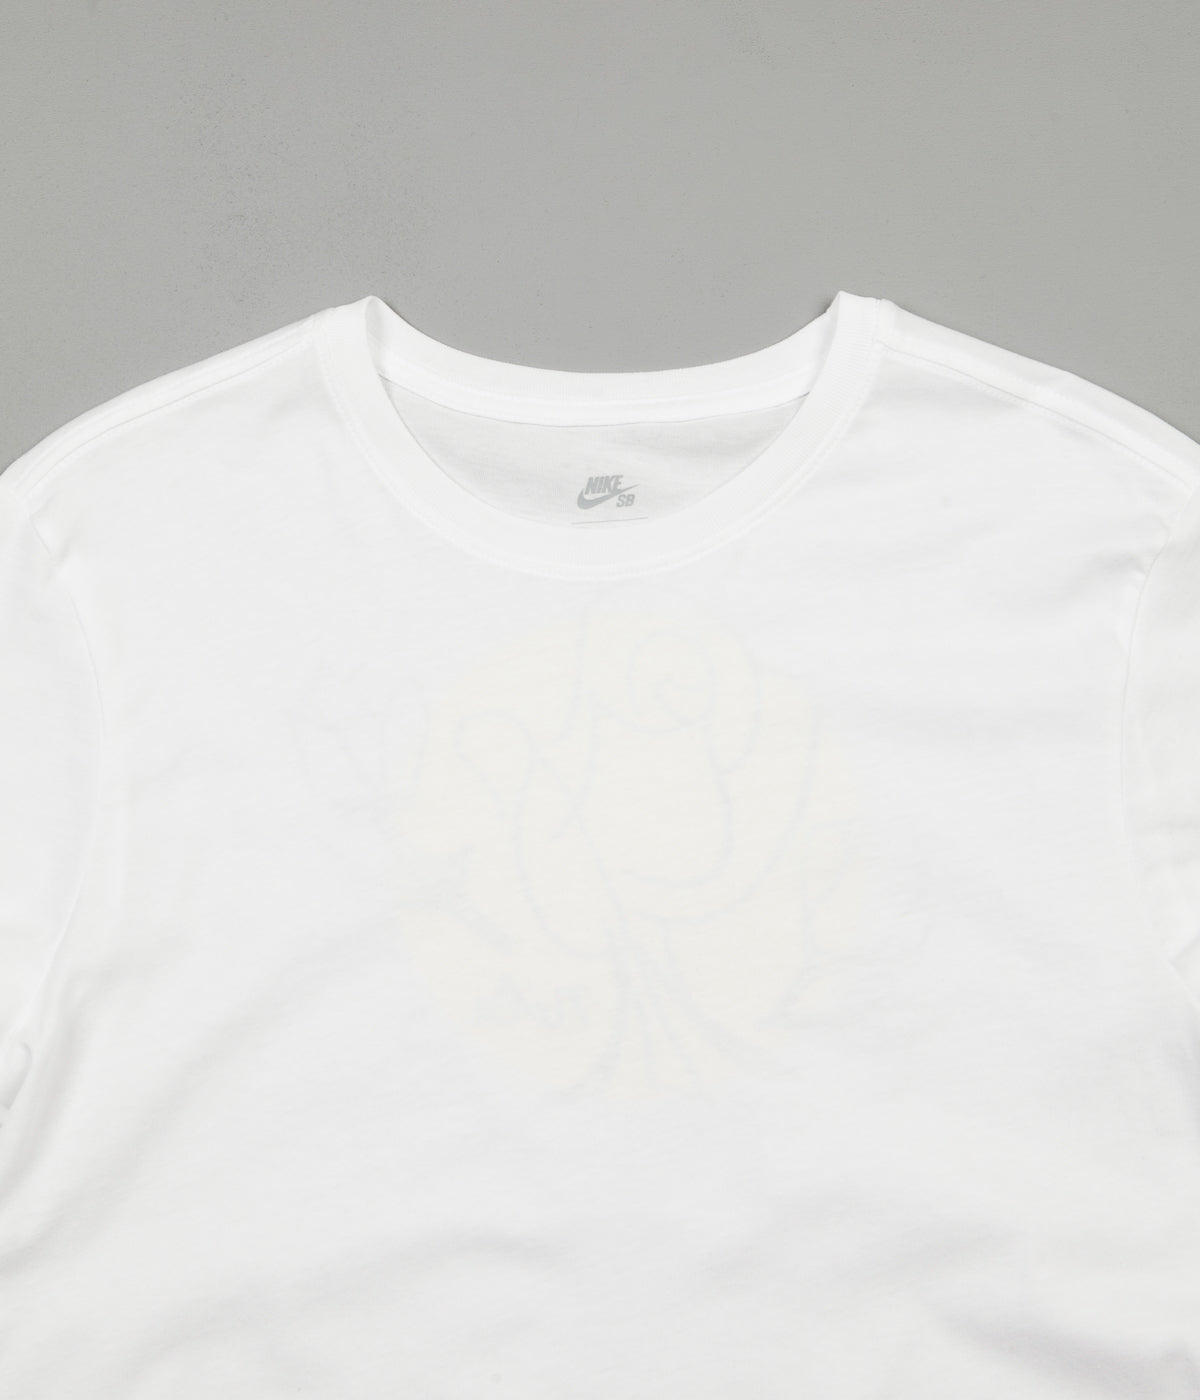 6e373e0d274 Nike SB Roses Long Sleeve T-Shirt - White   Black ...